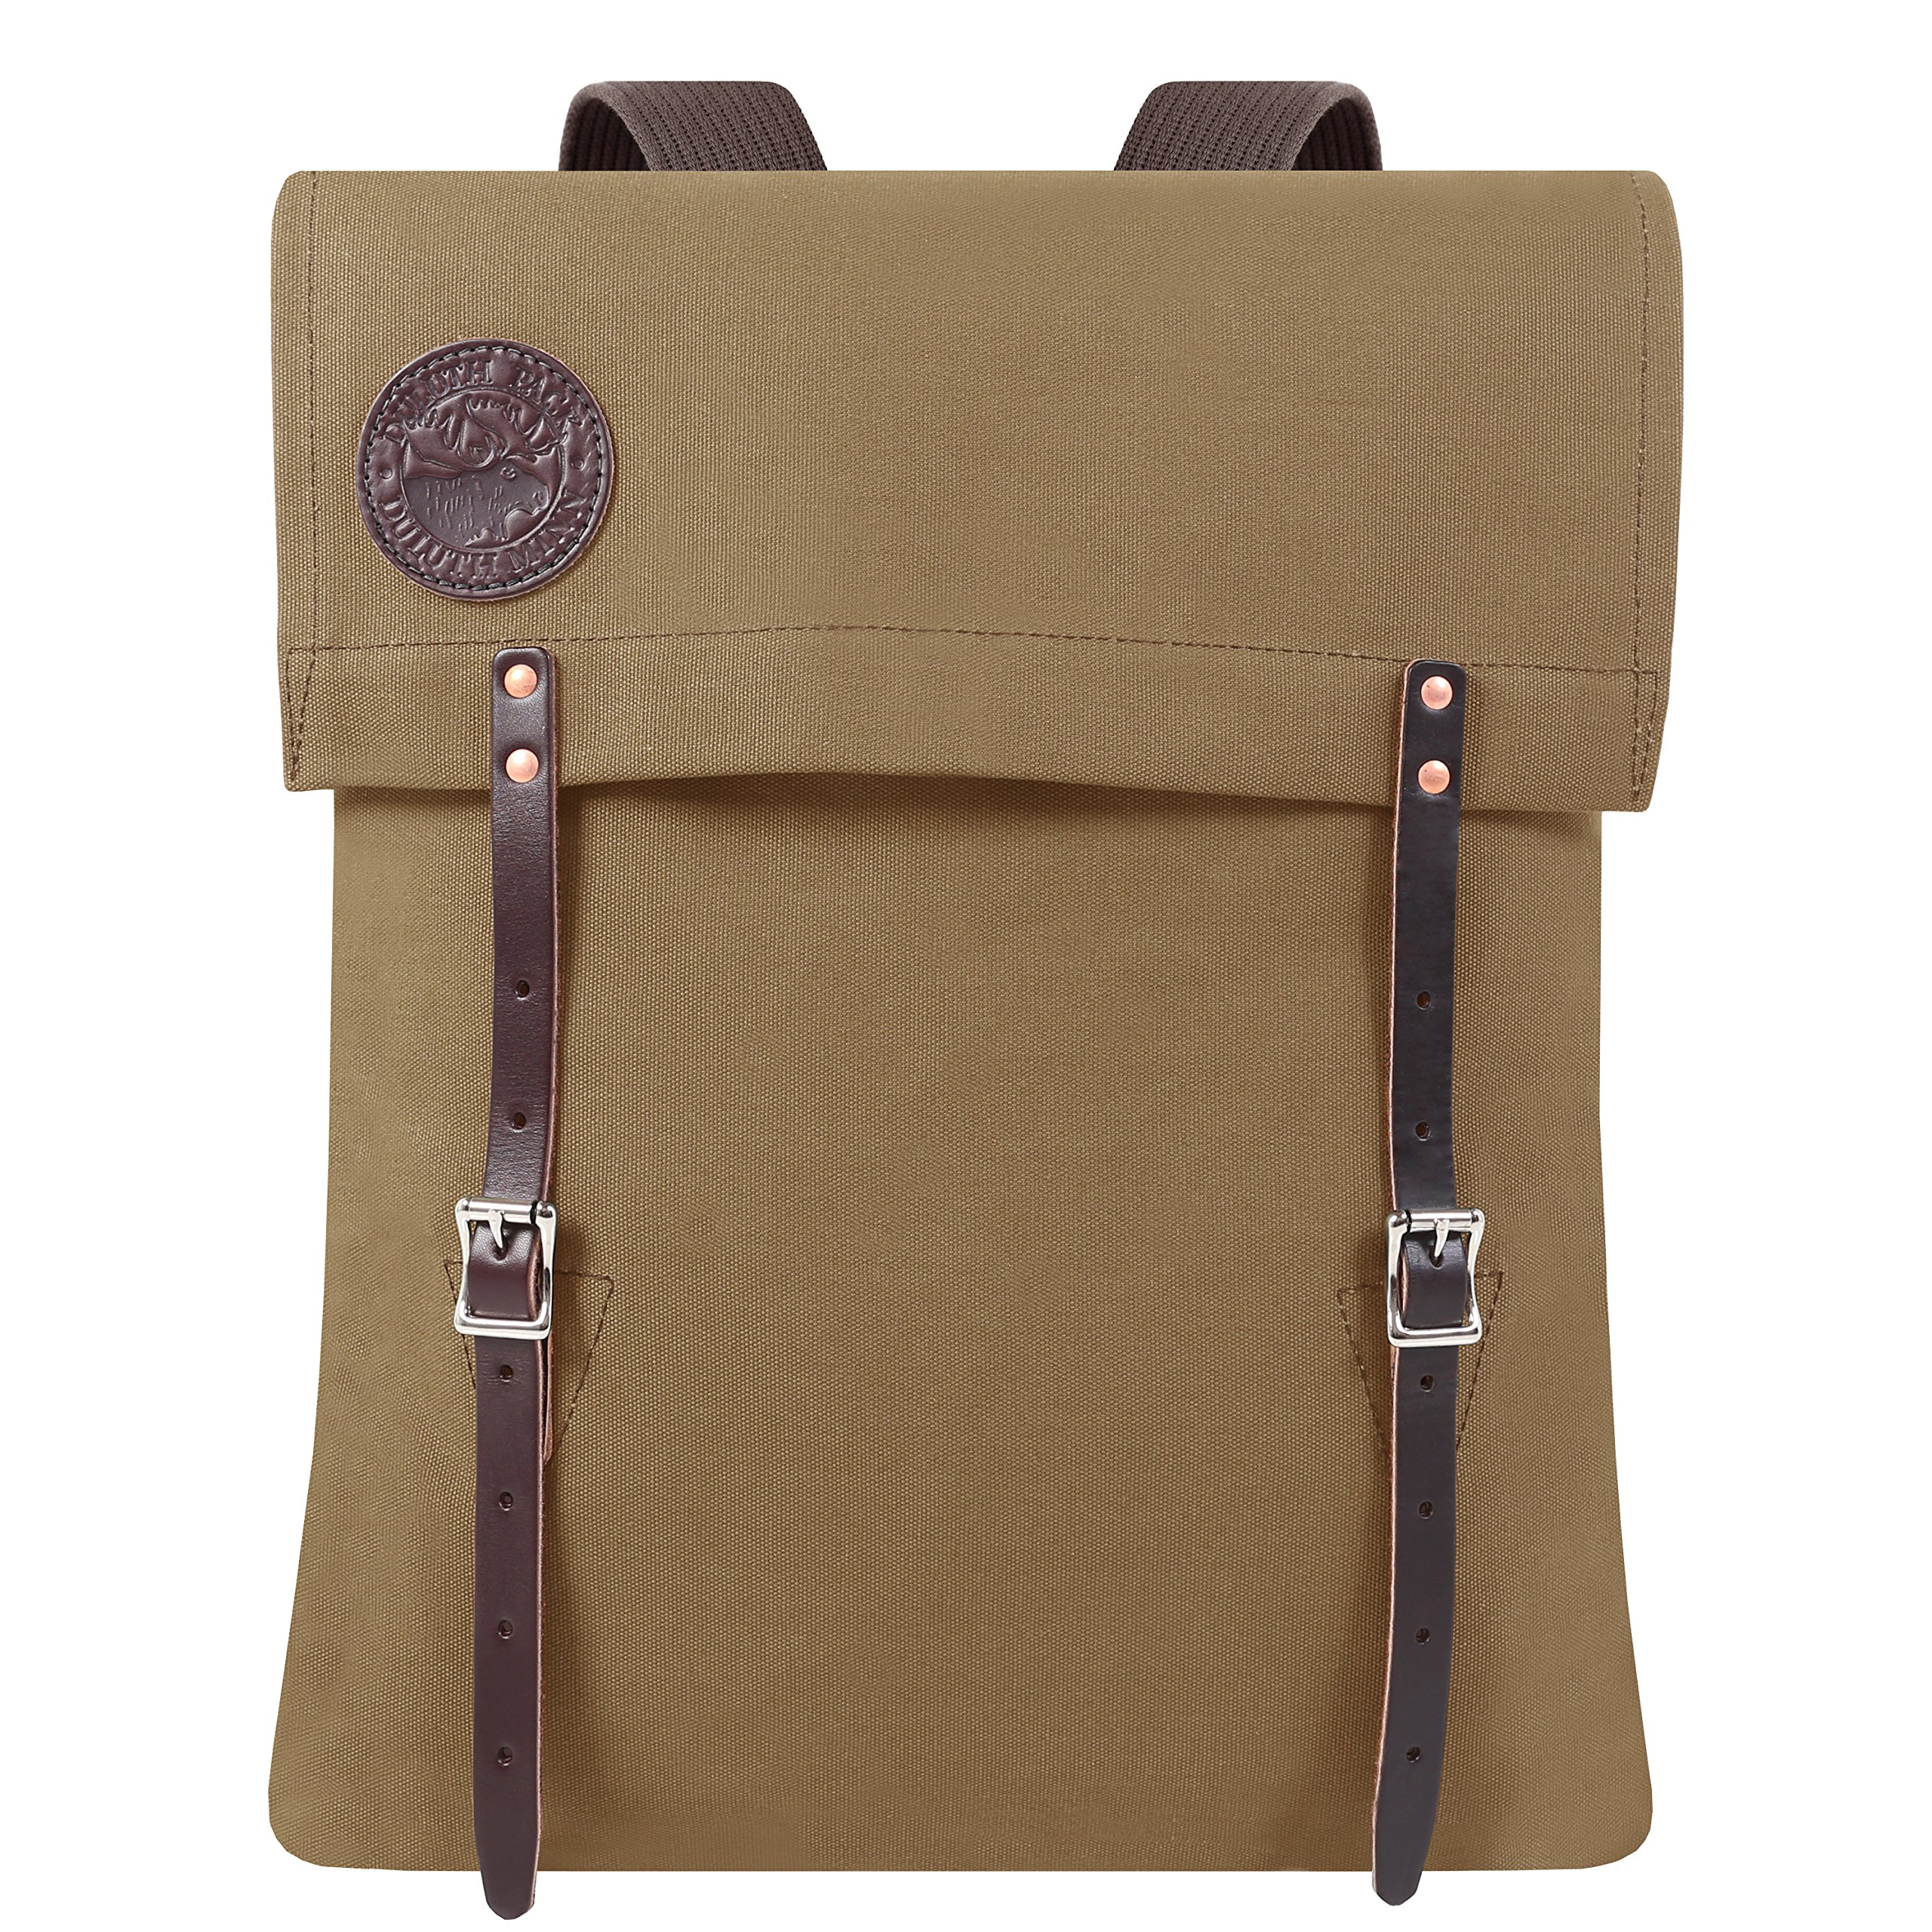 Duluth Pack #51 Utility Pack, Tan, 20 x 18-Inch